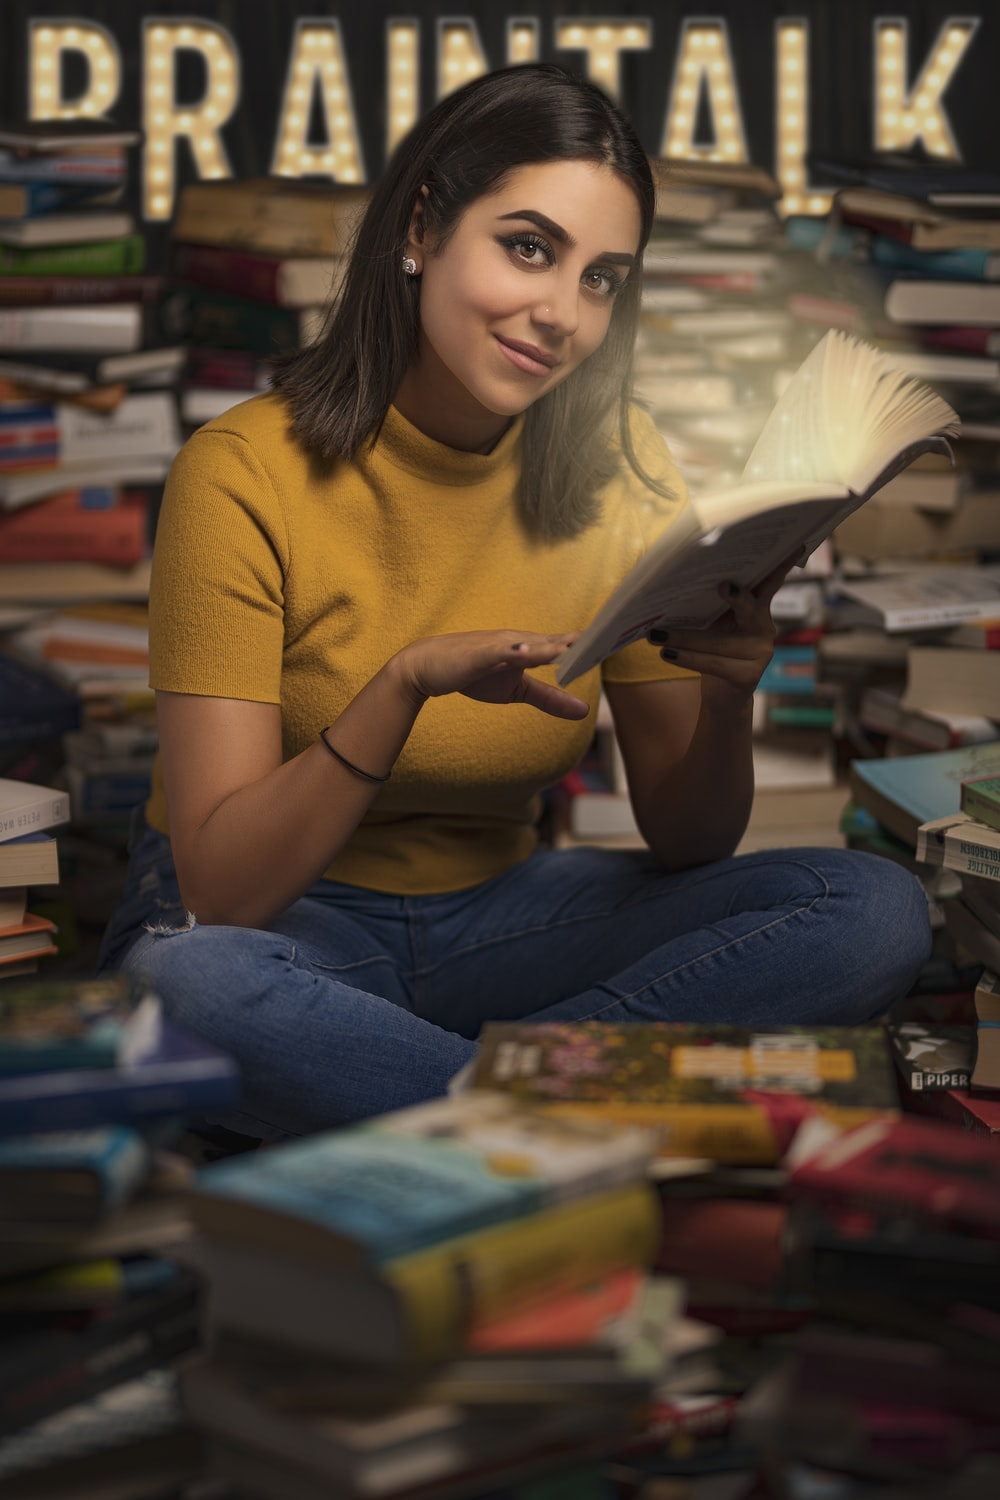 woman in yellow t-shirt reading book